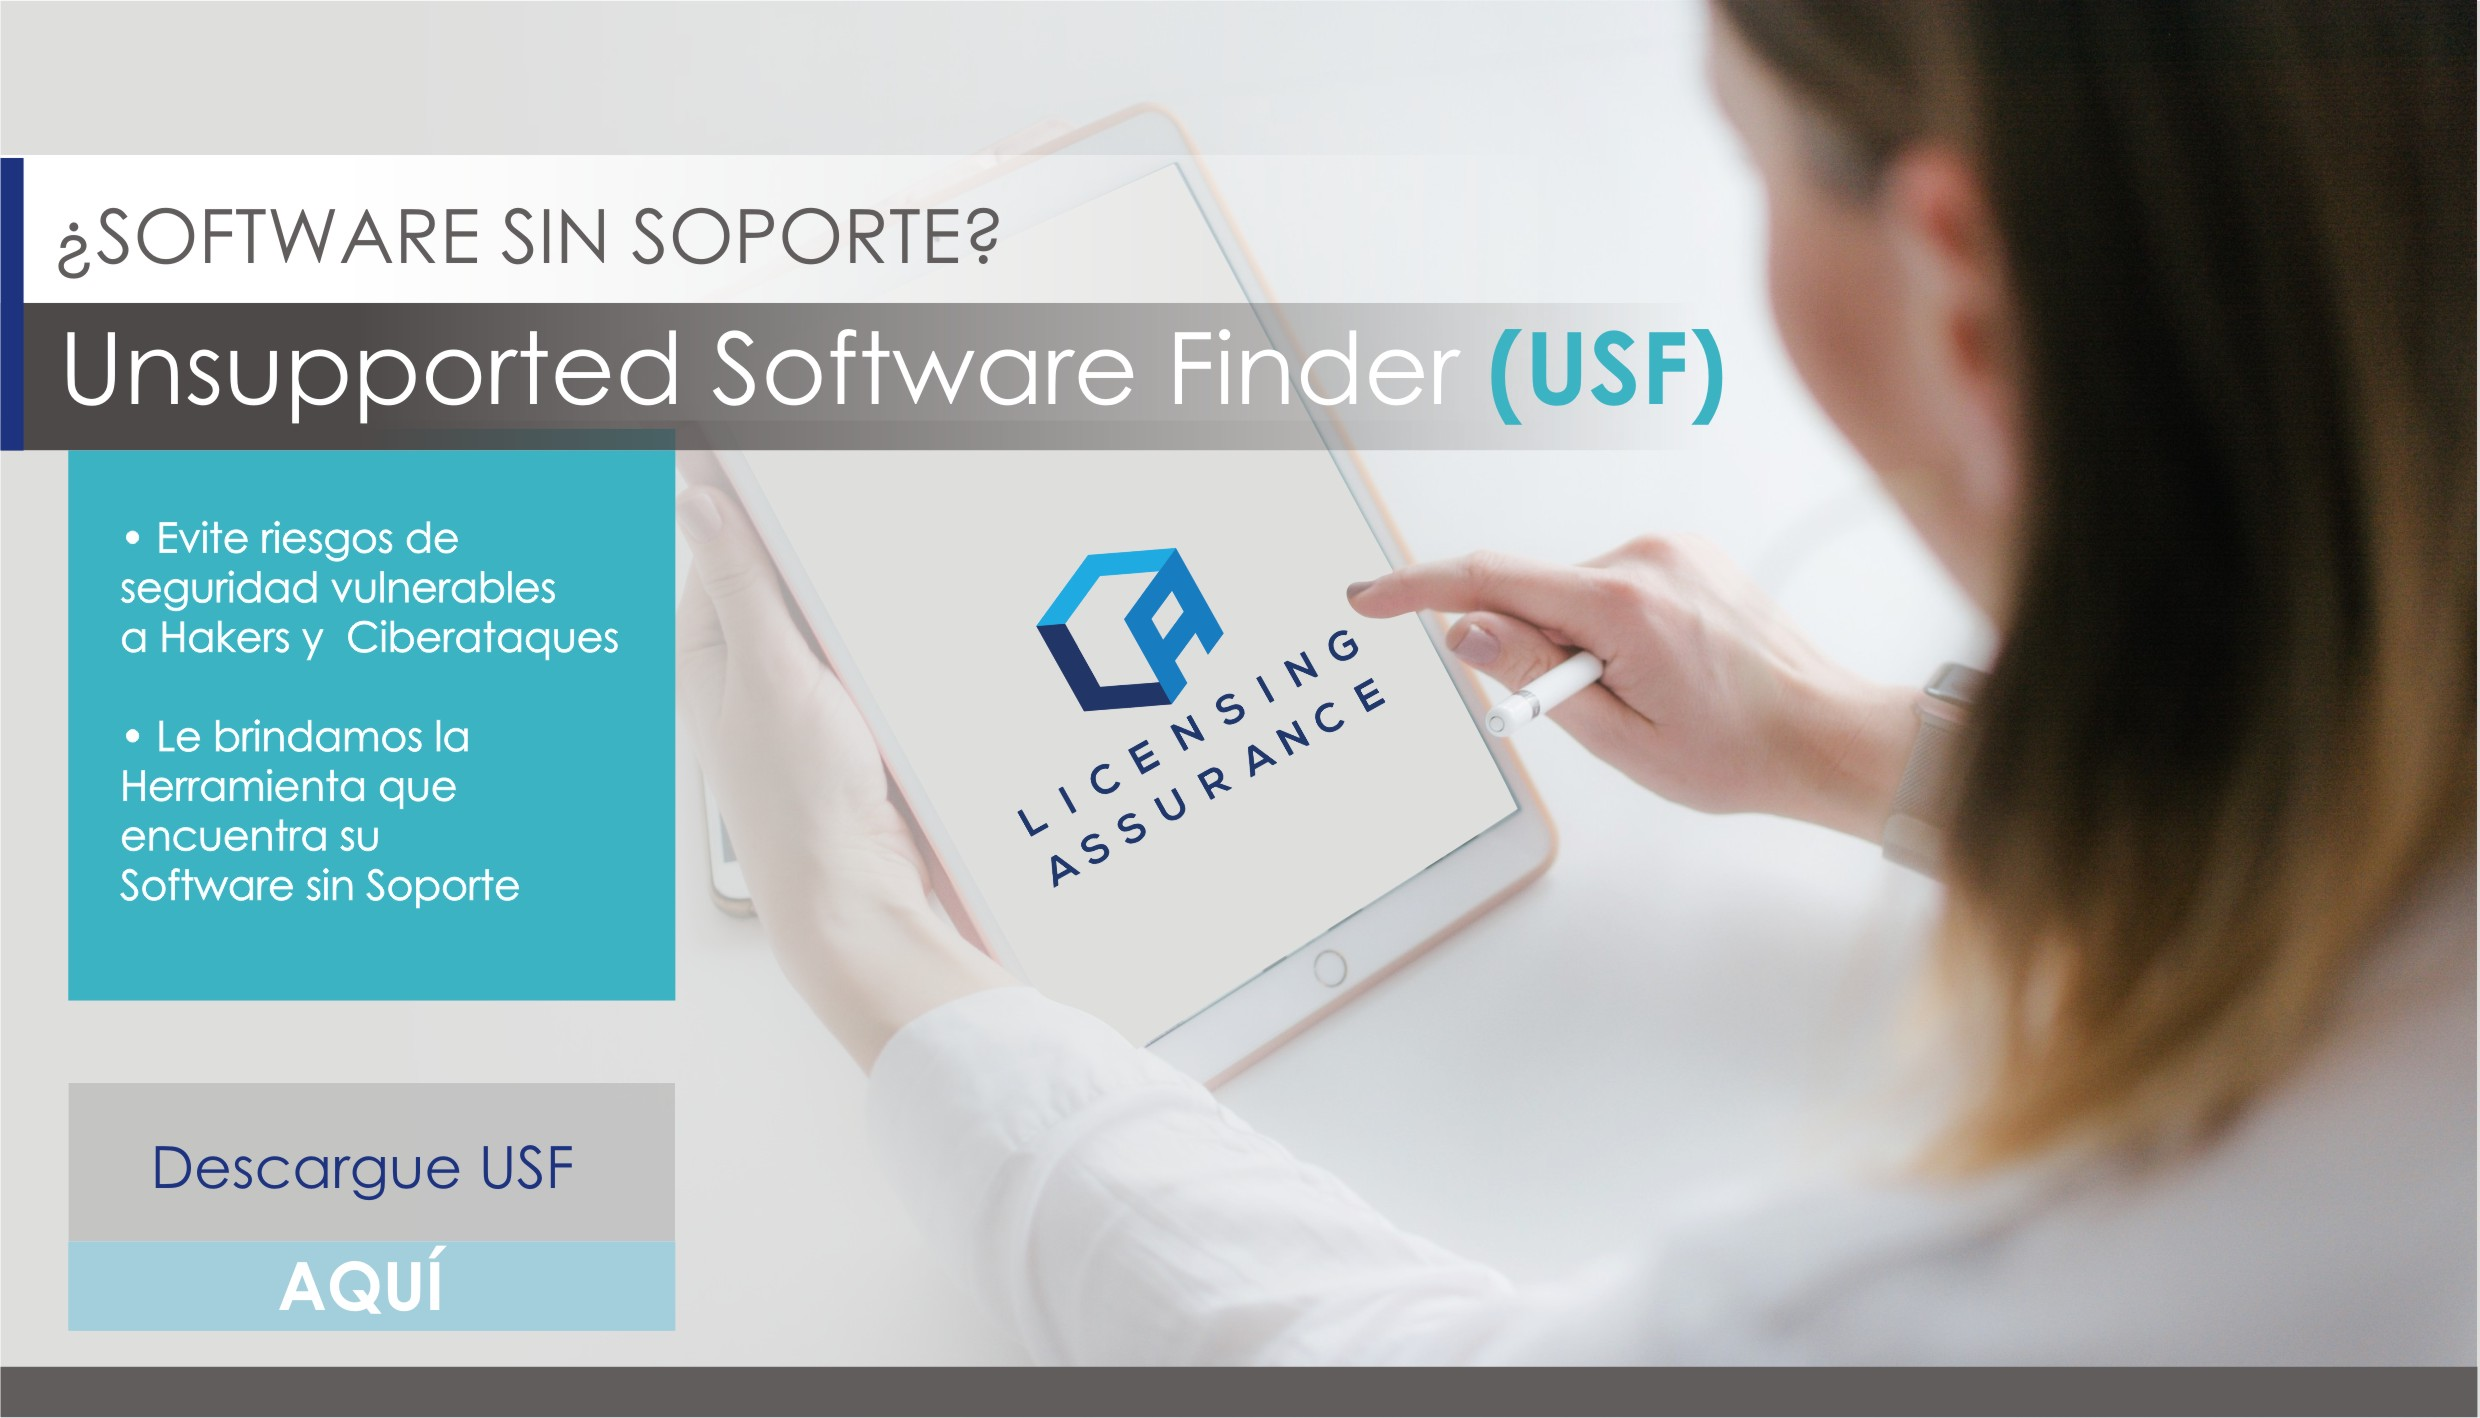 Unsupported Software Finder